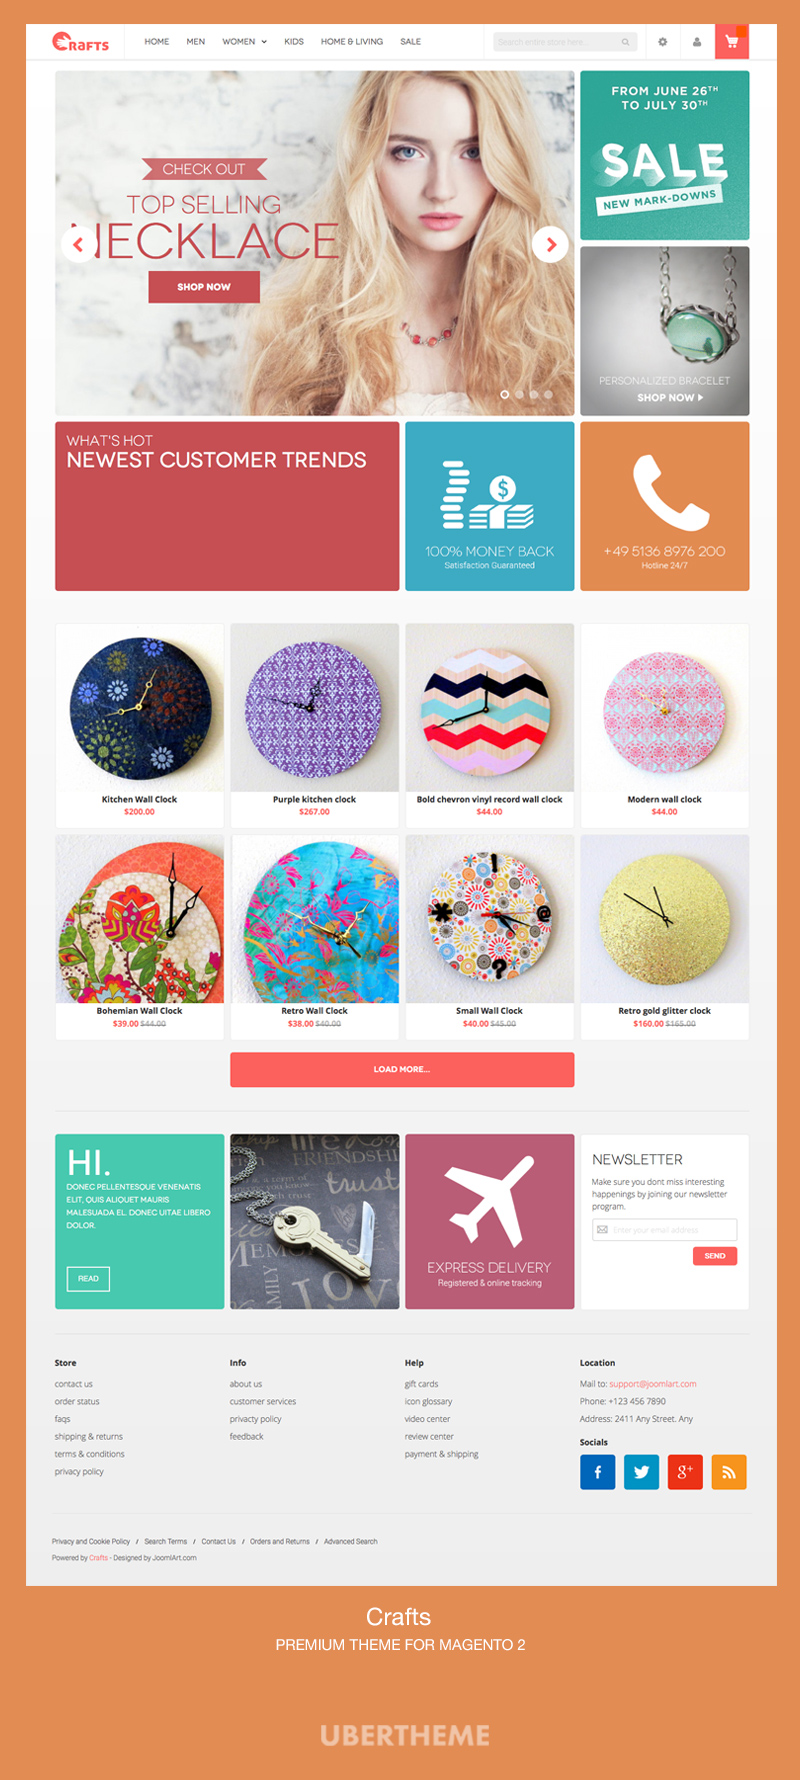 Crafts Homepage - Premium Magento 2 Theme